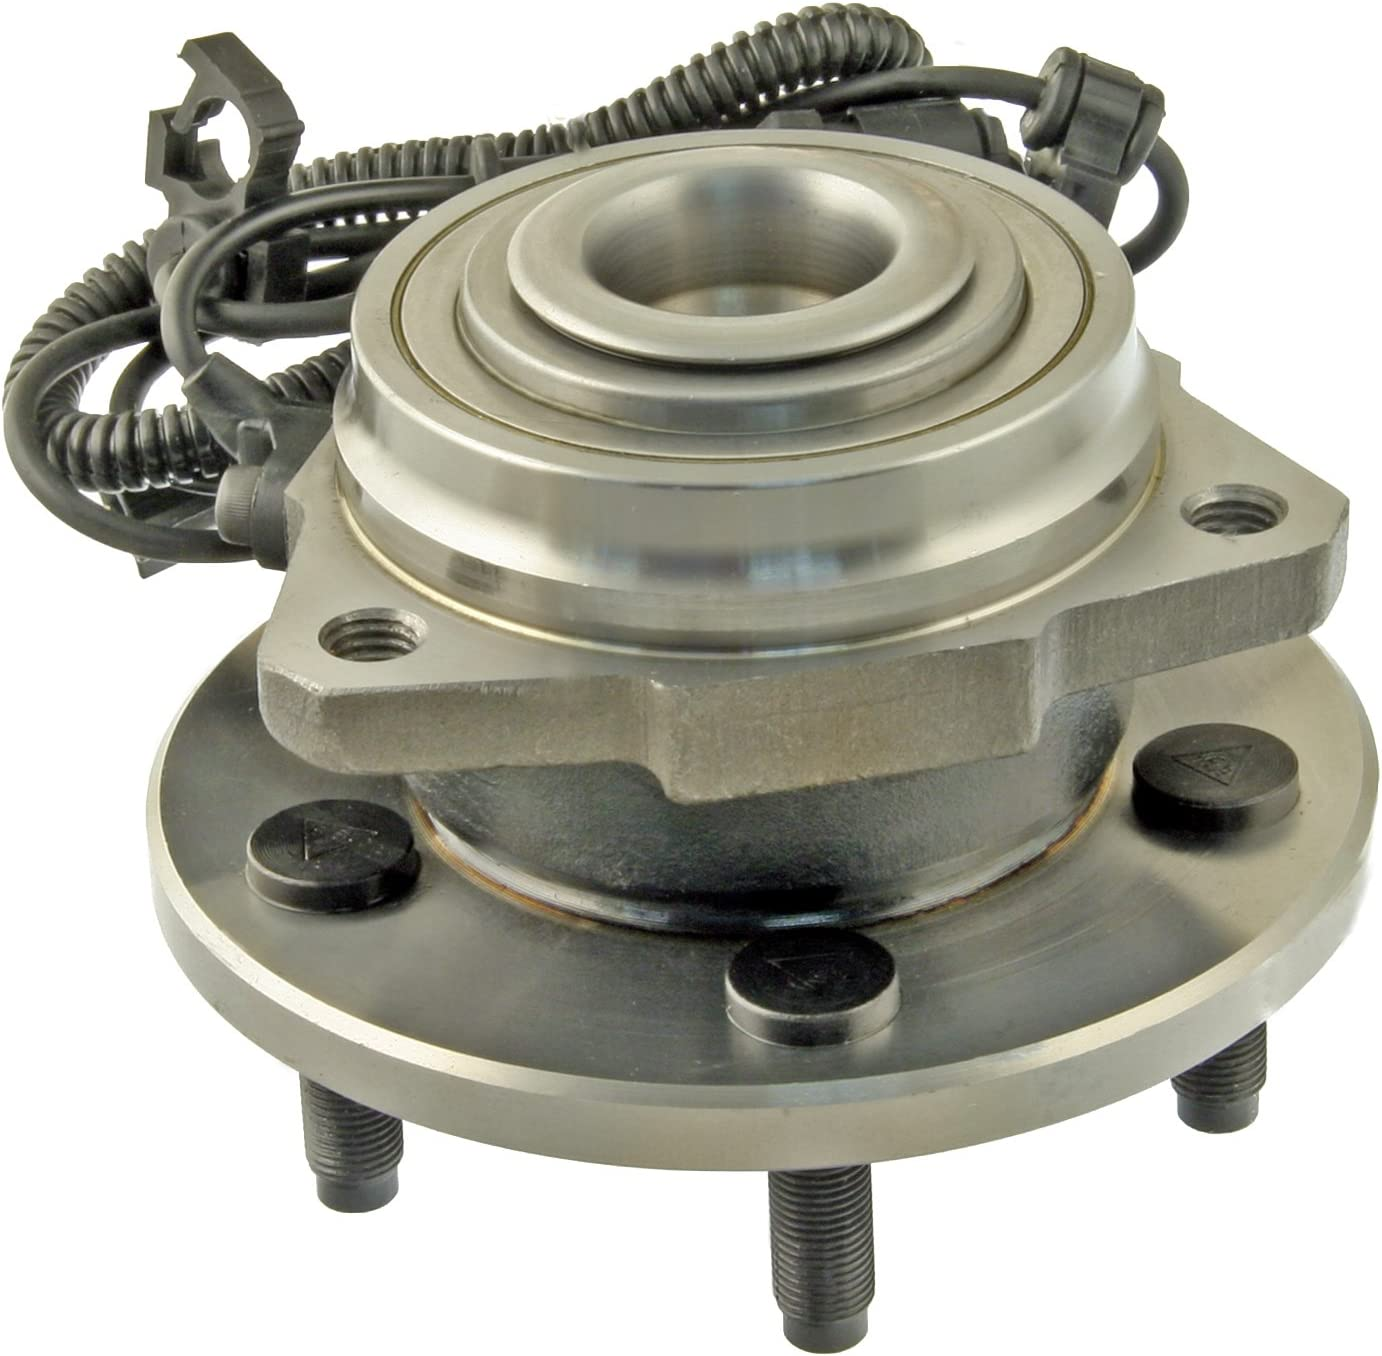 SKF BR930224 Cross Reference WJB WA513176 Timken HA599455L Moog 513176 Front Left Wheel Hub Bearing Assembly